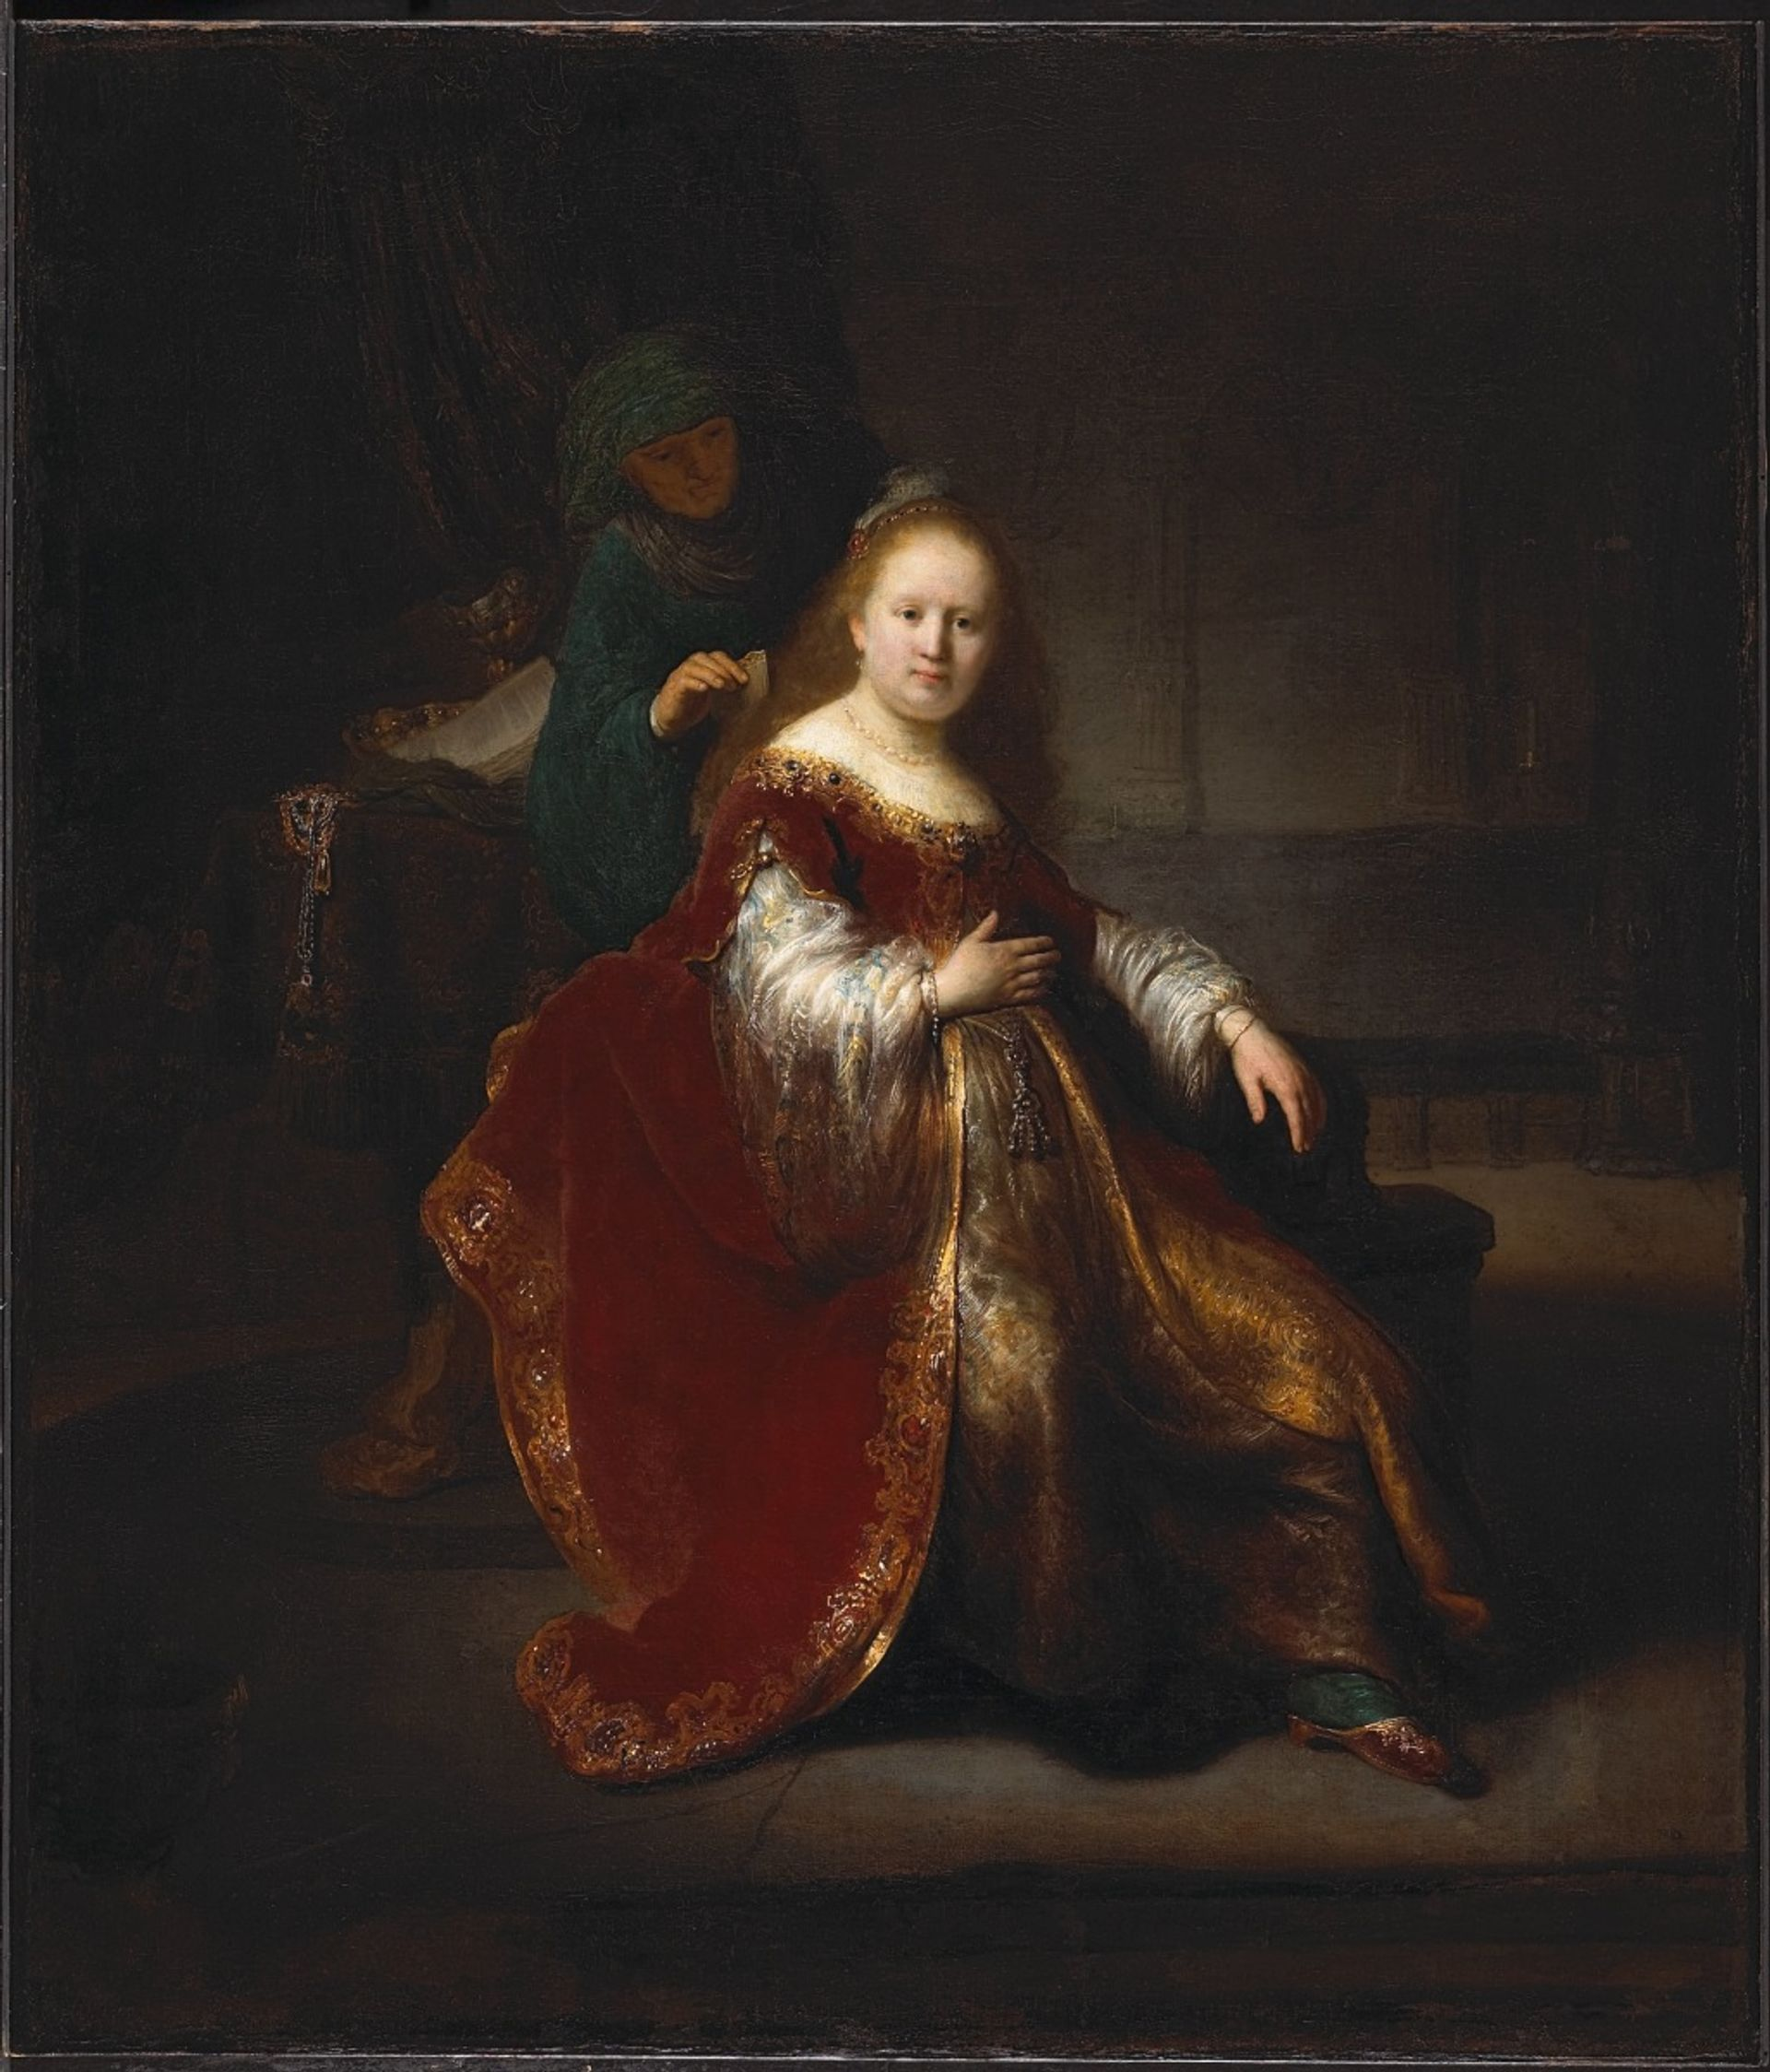 Rembrandt van Rijn, Heroine from the Old Testament (1632-1633) Courtesy of the National Gallery of Canada